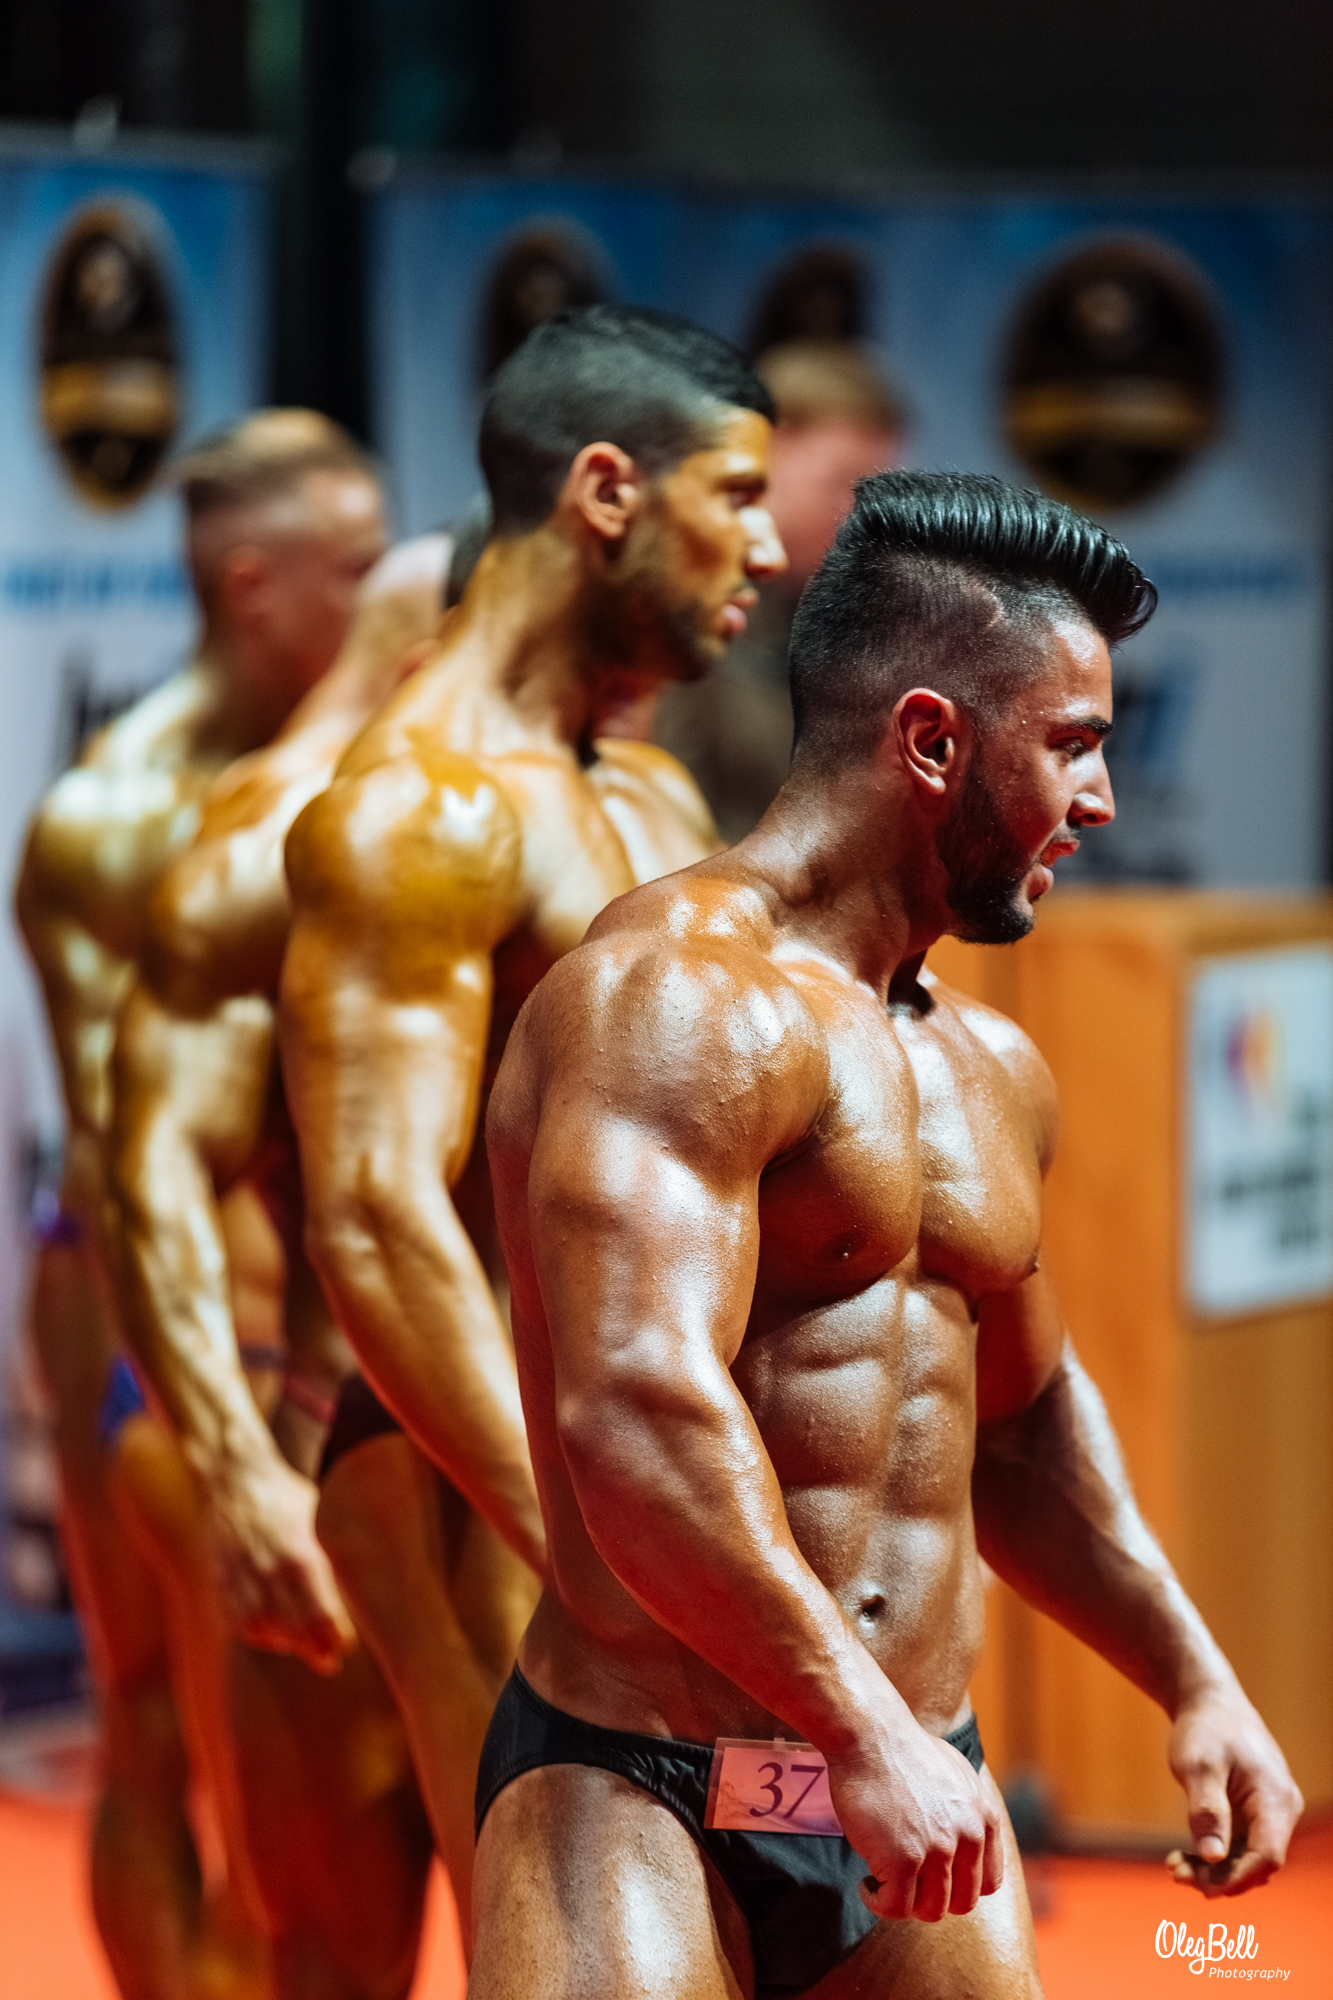 NICOLE_BODYBUILDING_COMPETITIONS_0209.jpg